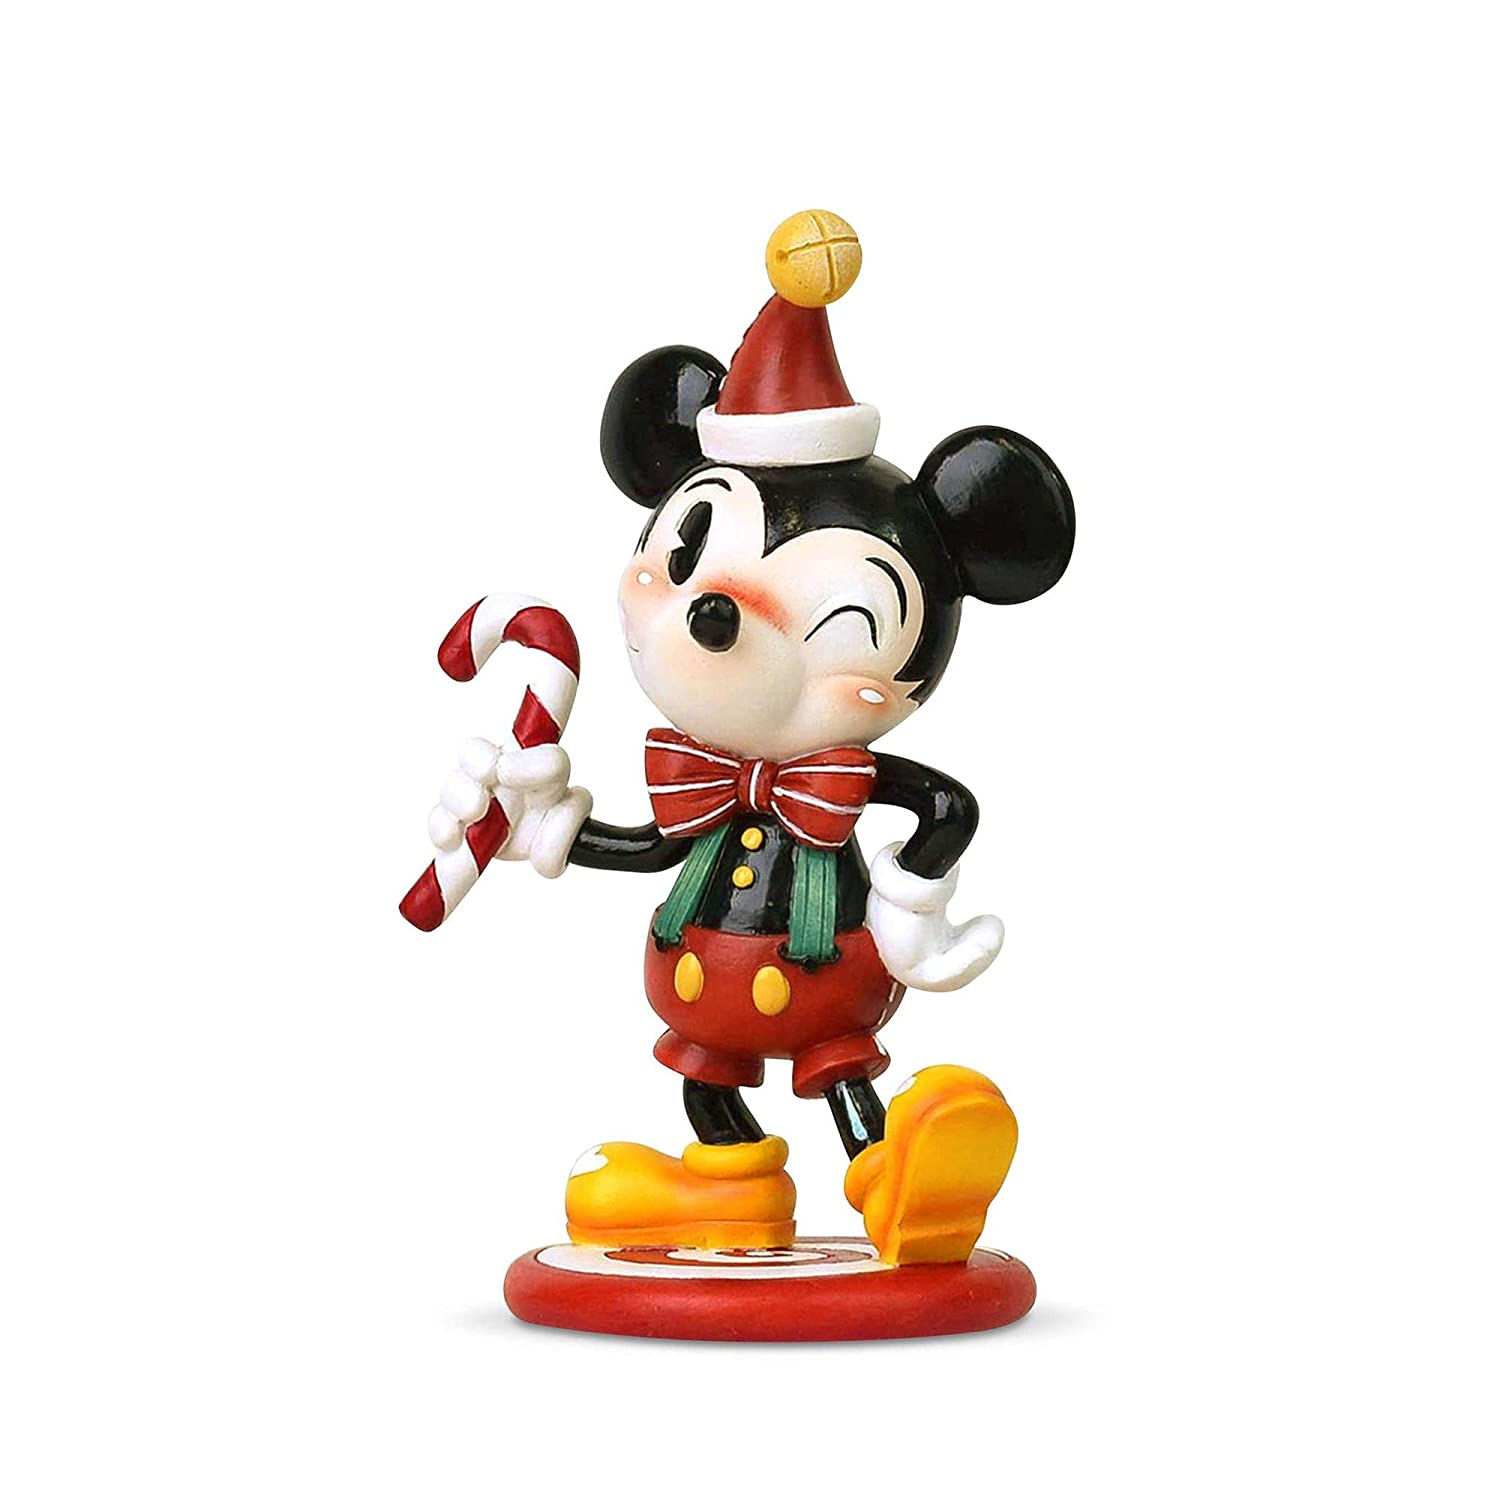 Enesco The World of Miss Mindy Christmas Mickey Mouse Figurine 5.91 Multicolor 6003765